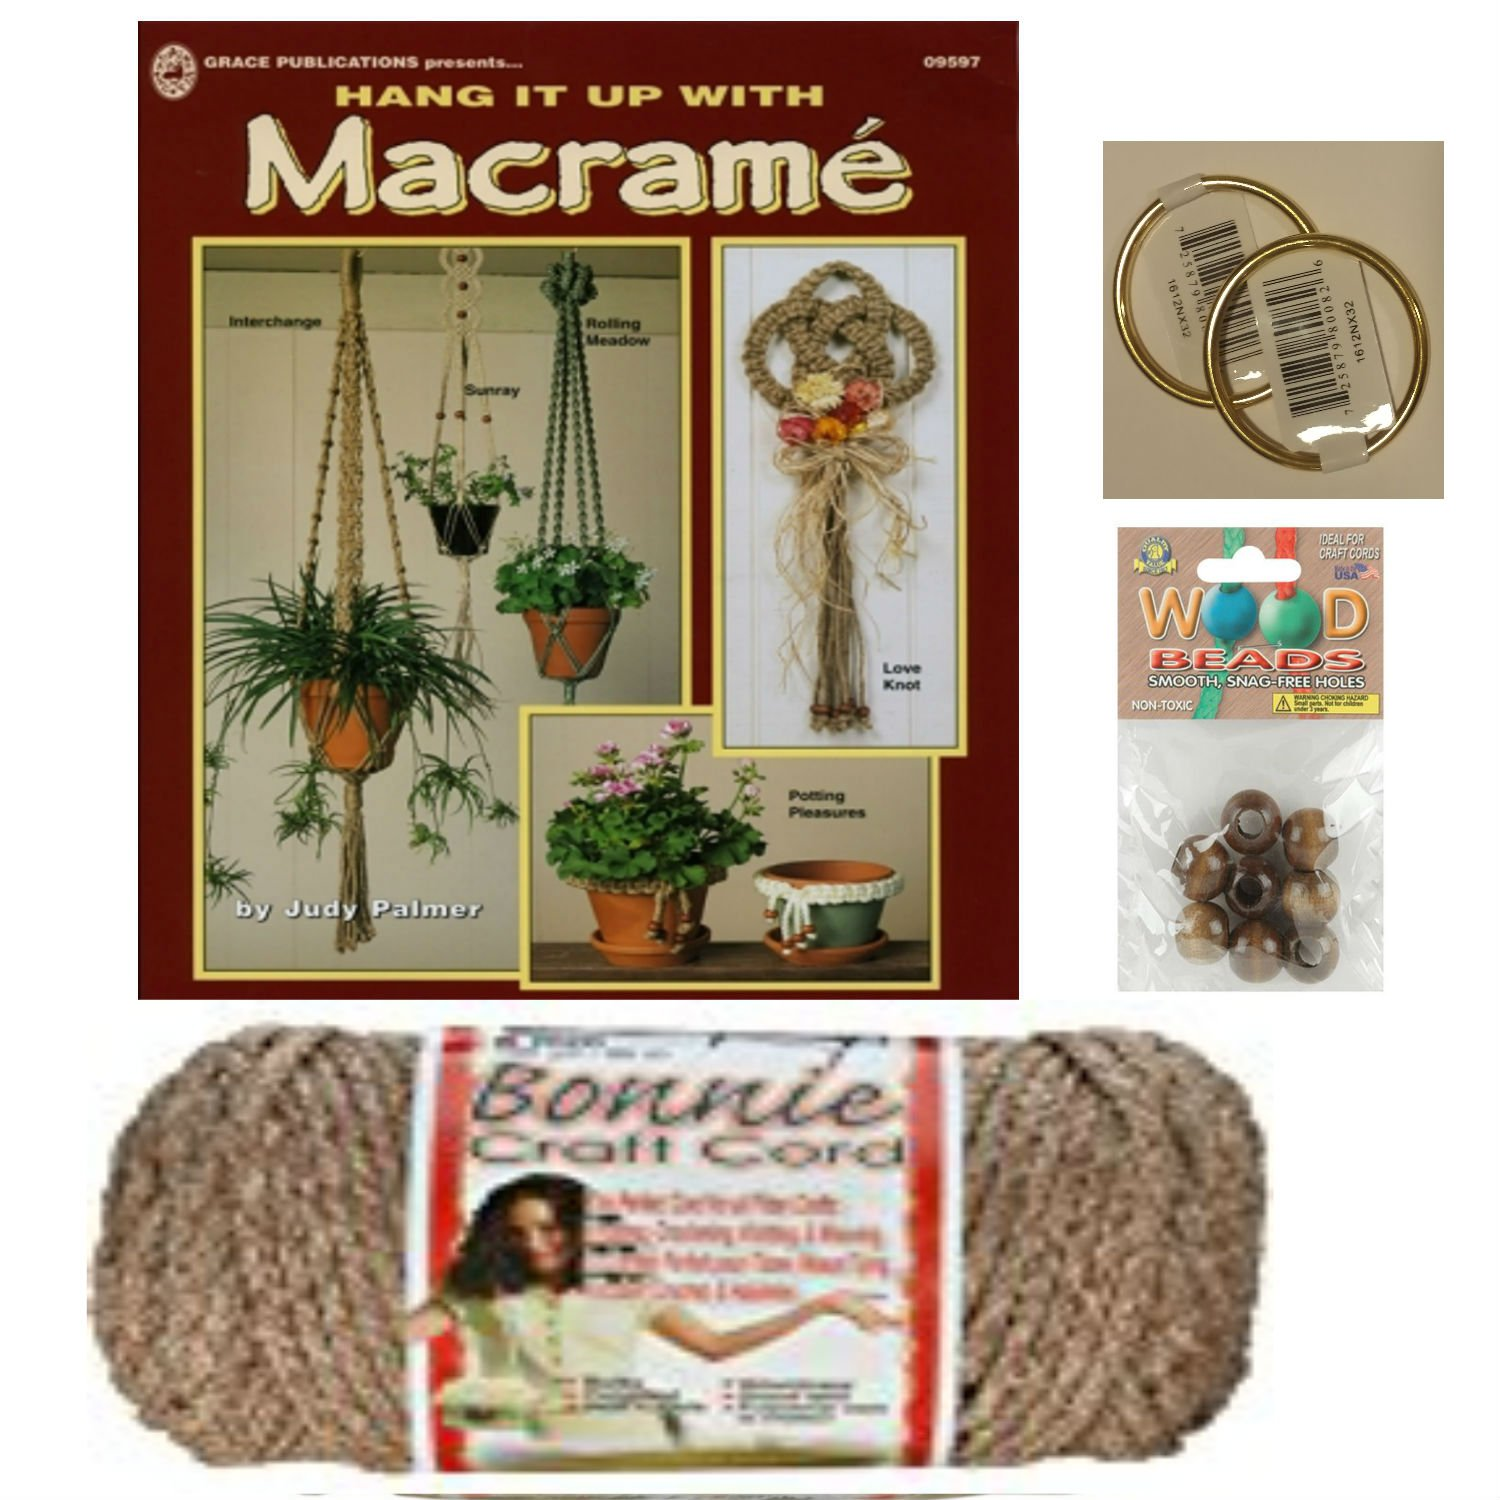 Macrame kit Bundle with Craft Cord, Wooden Beads, Rings, and Project Book for Plant Hangers and Wall hangings (Pottery) Gideons Goods